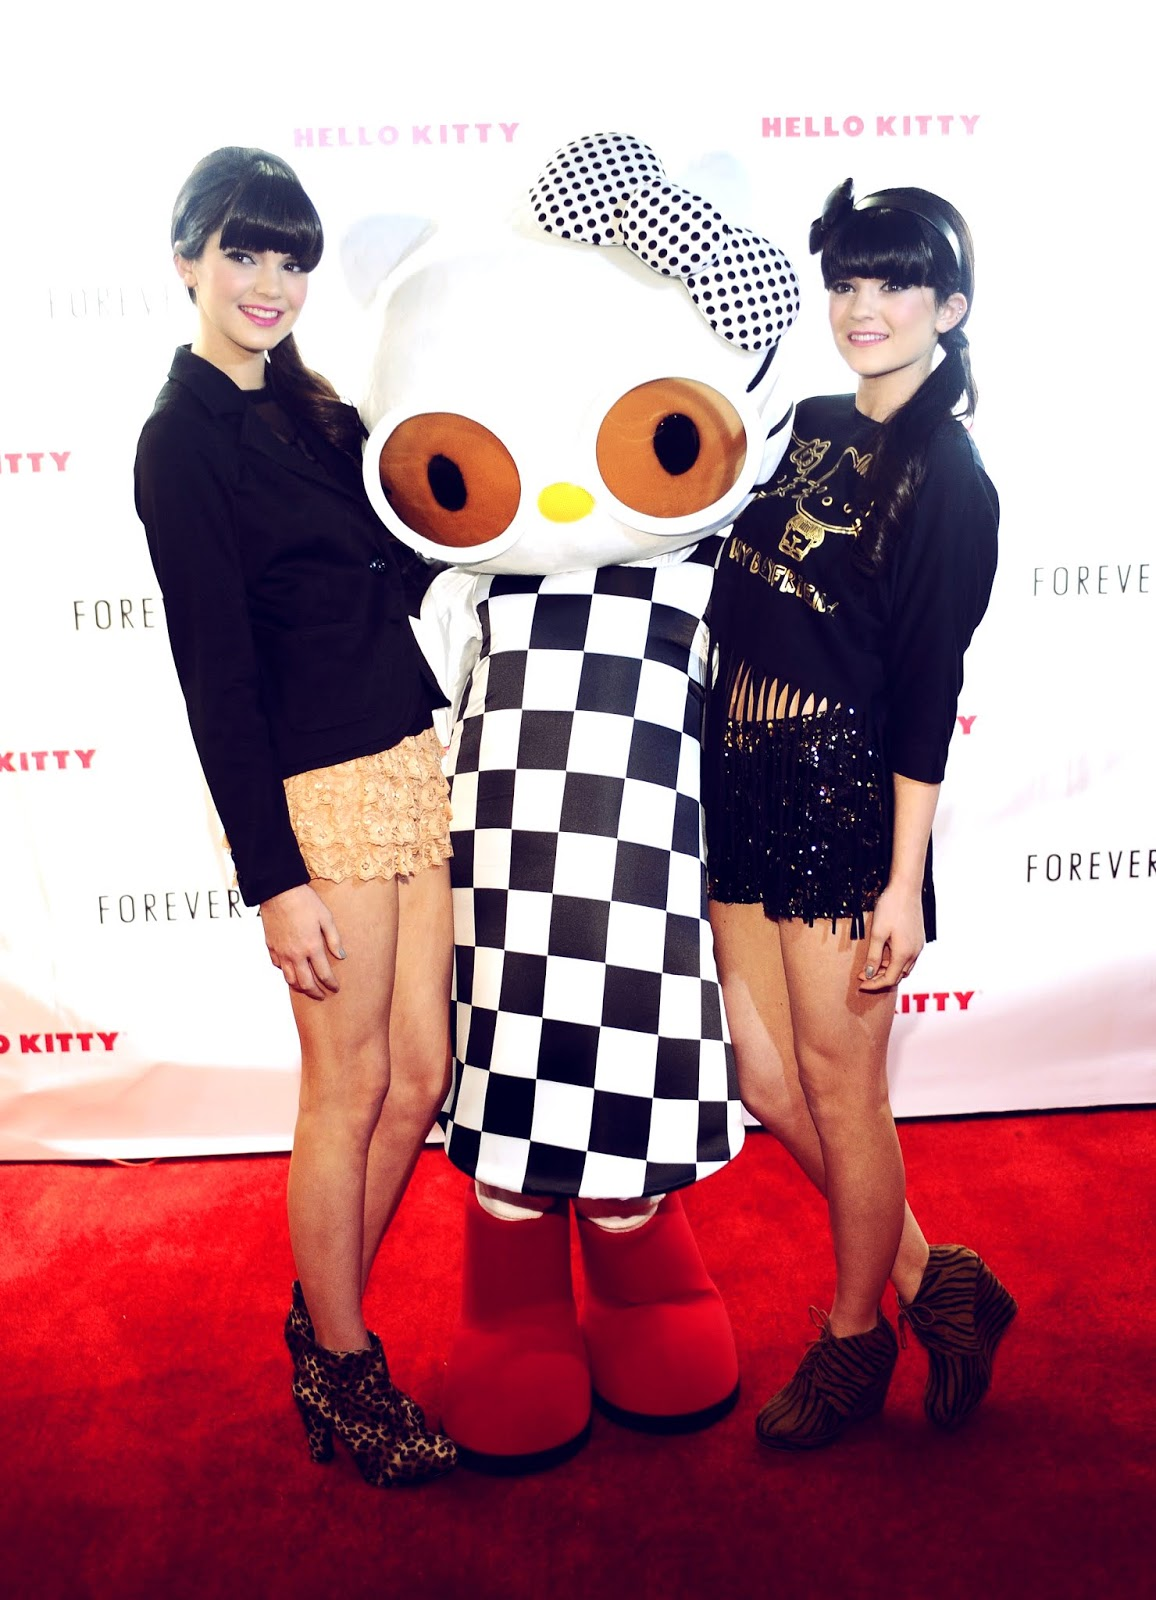 2 - Forever 21 For Hello Kitty Collection Launch Party Red Carpet in November 17, 2011